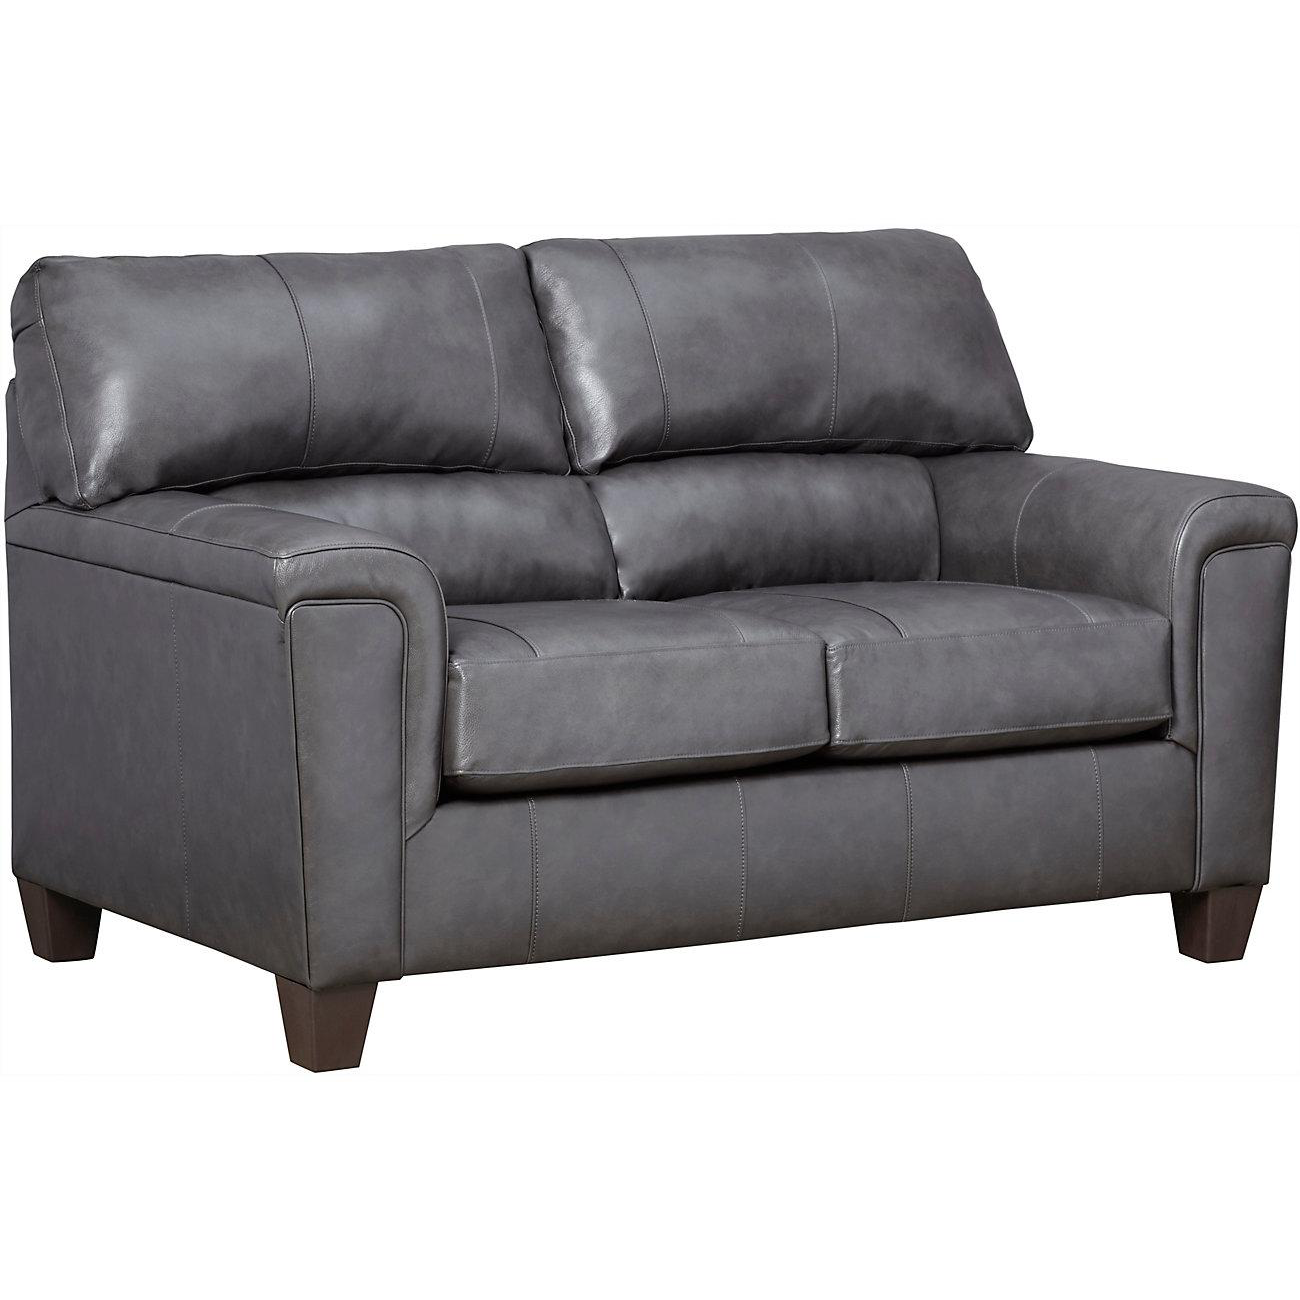 Soft Touch Loveseat